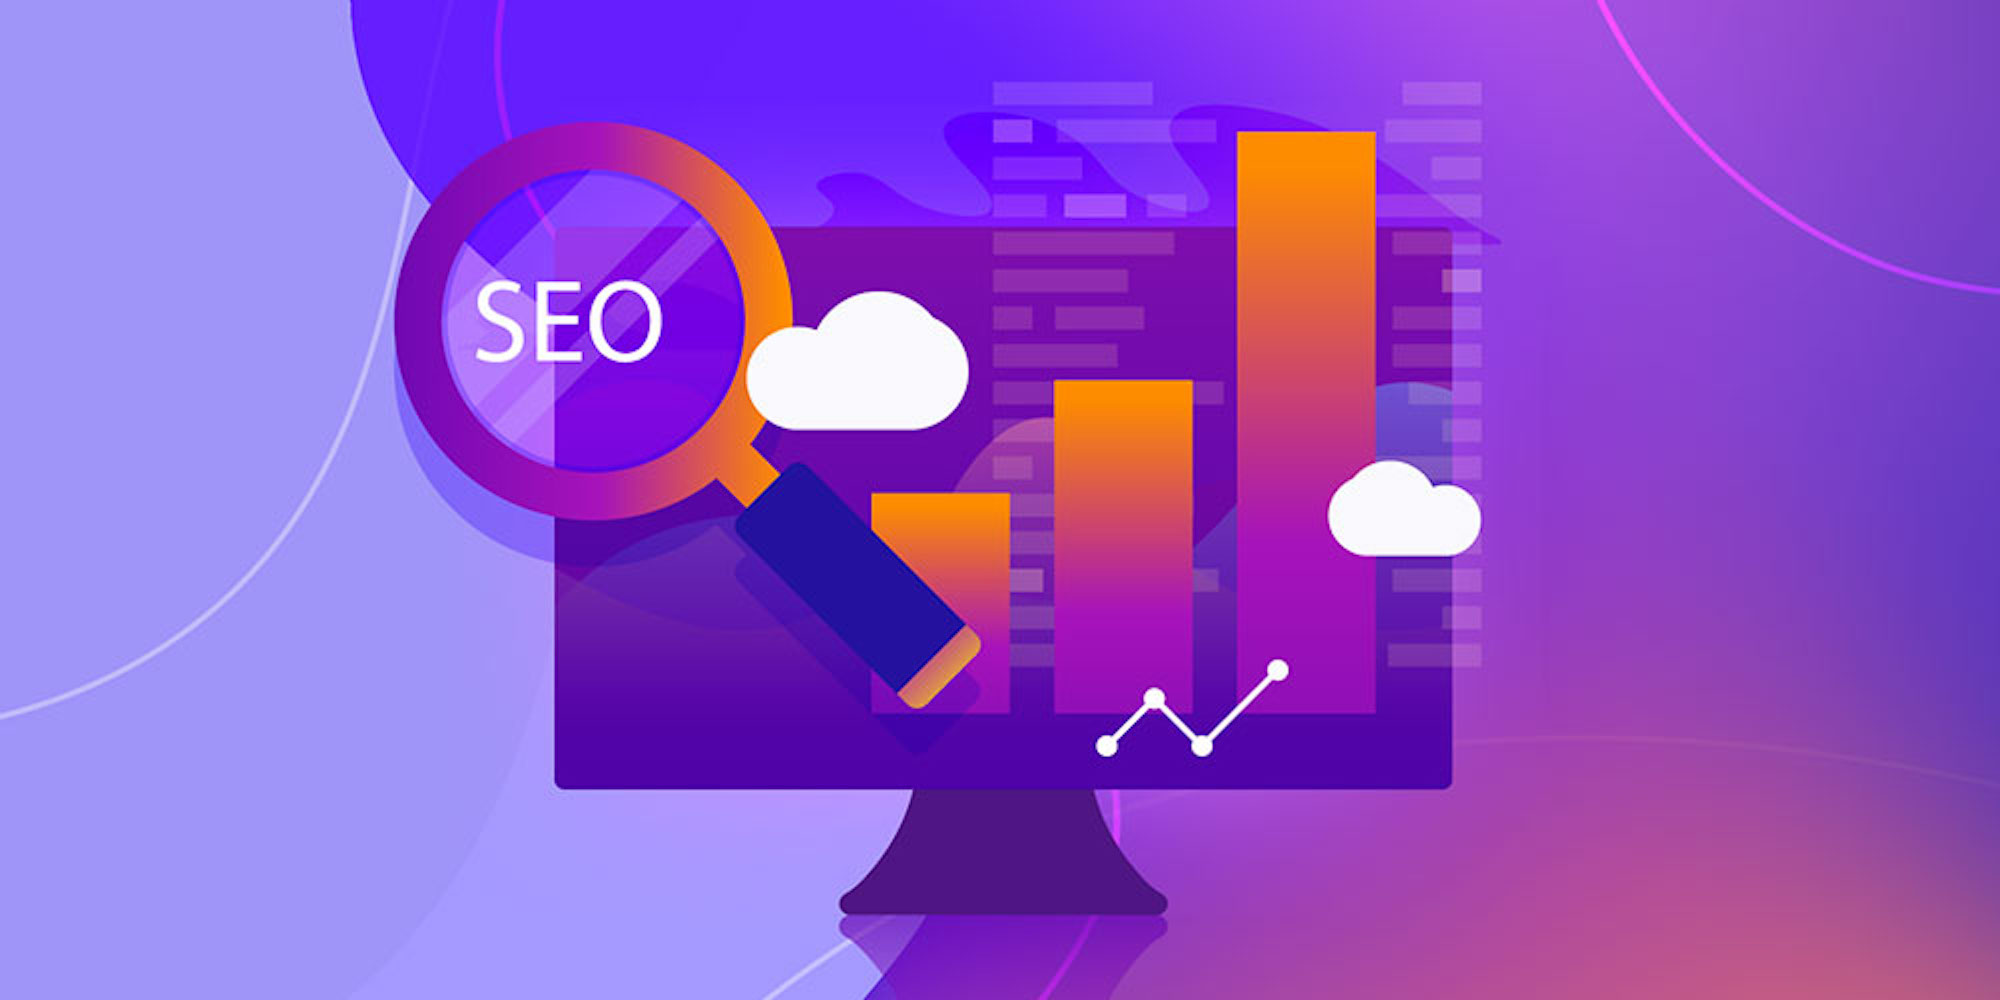 Learn to grow your site with SEO from 15 hours of training for $10